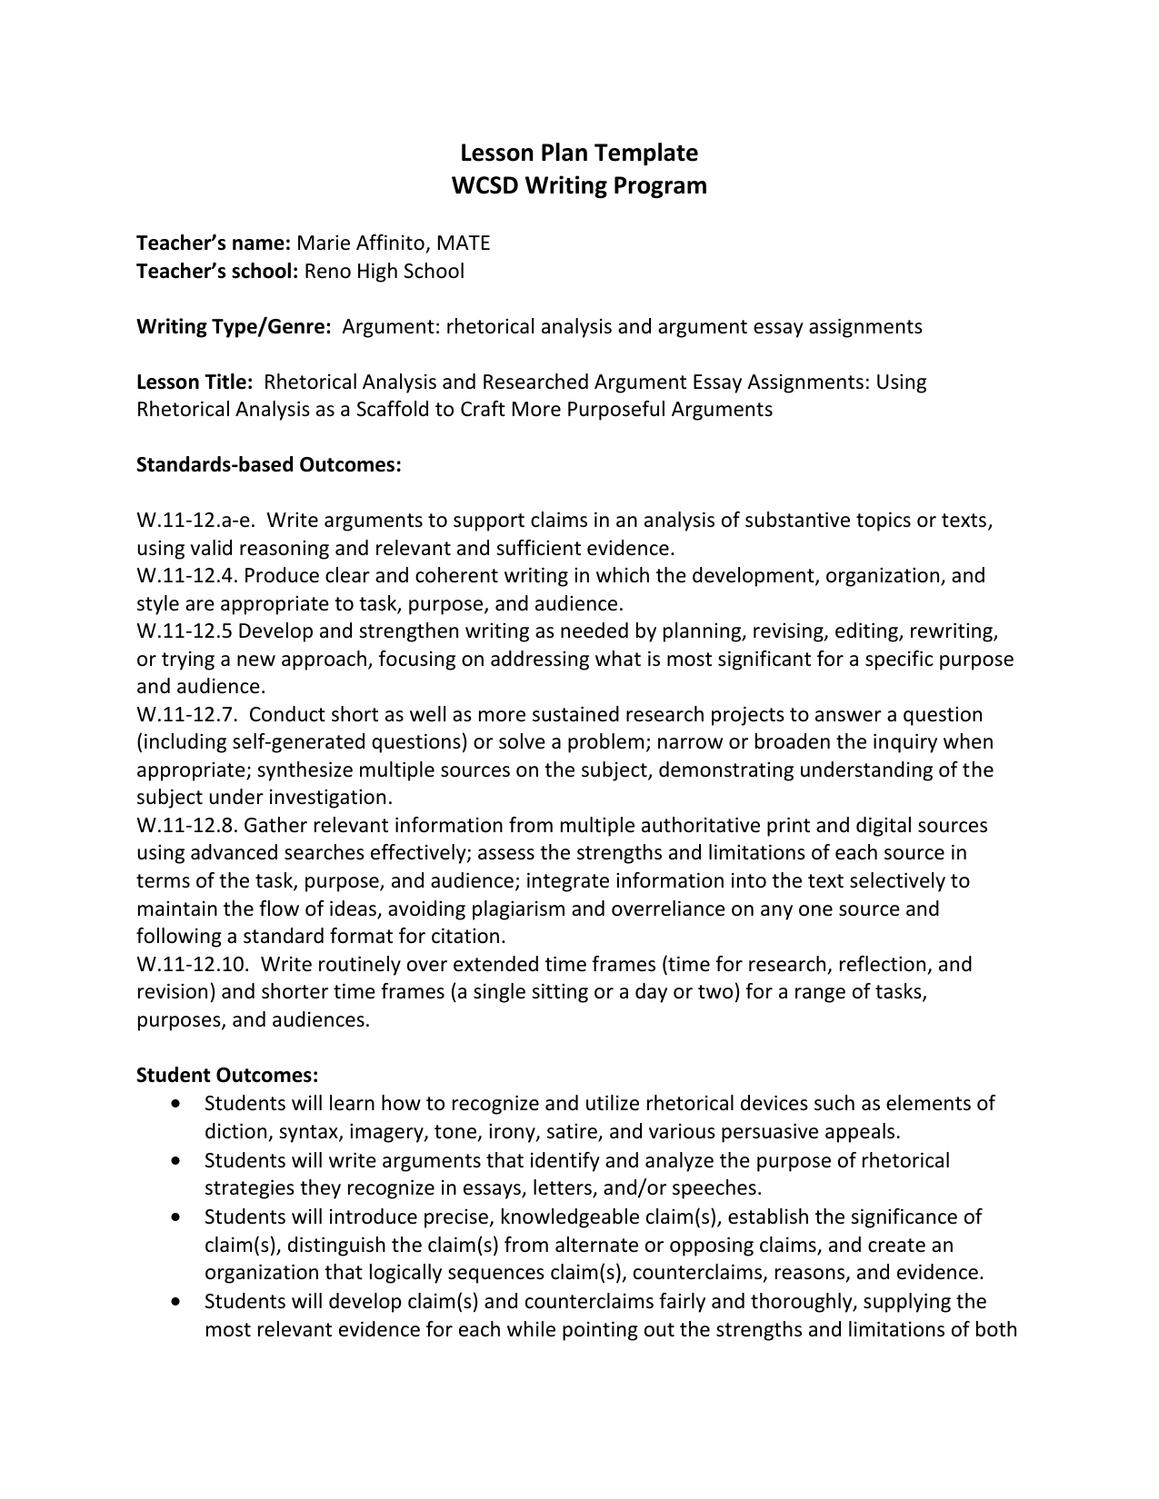 rhetorical analysis and researched argument essay assignments by rhetorical analysis and researched argument essay assignments by washoe county school district